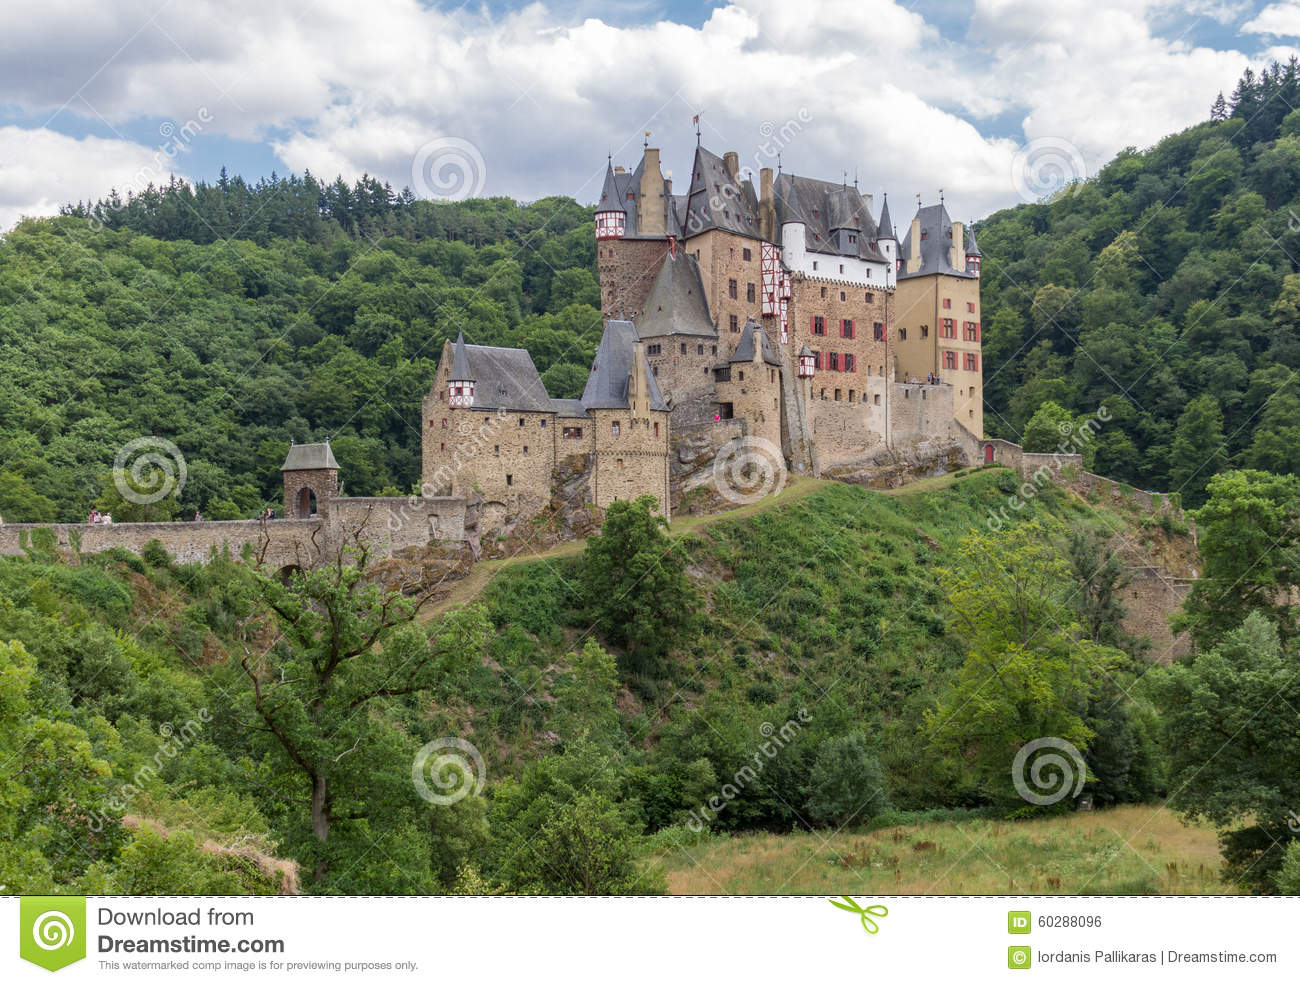 Burg Eltz, Picturesque Medieval Castle At The Rhine Valley.